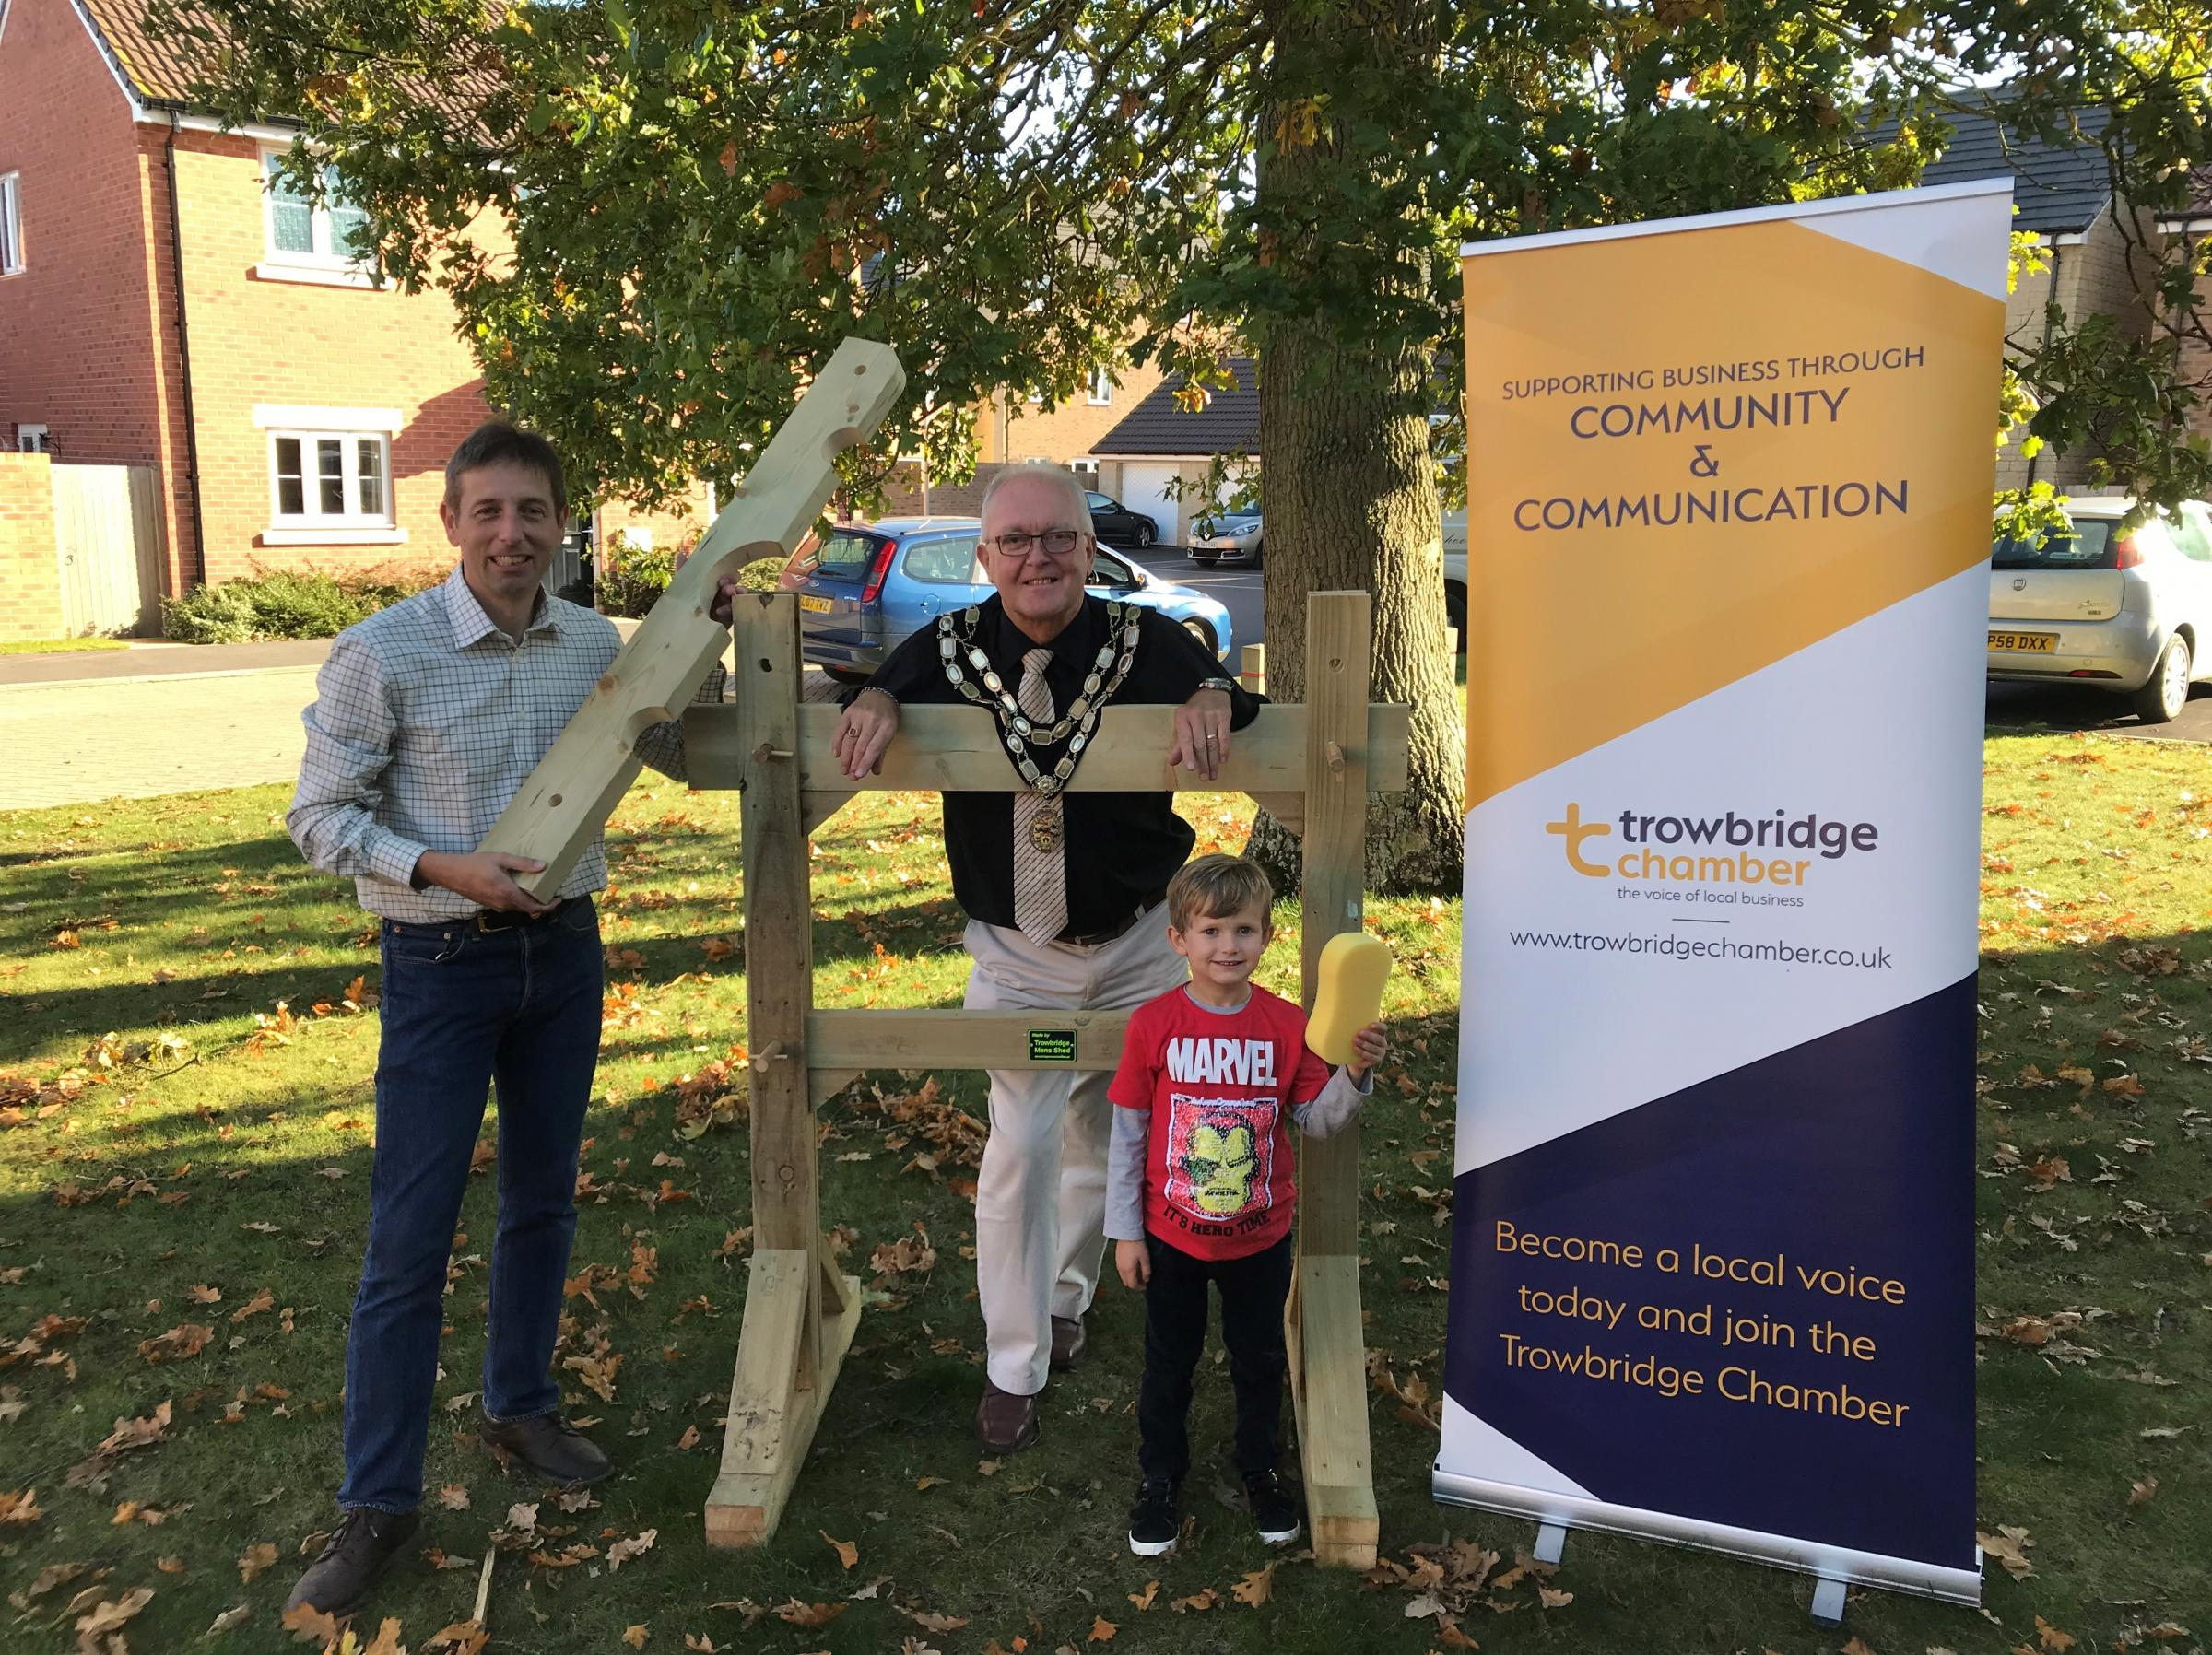 Cllr Dennis Drewett, the Mayor of Trowbridge, with Edward Kirk, of Trowbridge Chamber, and Henry Hawker, 4